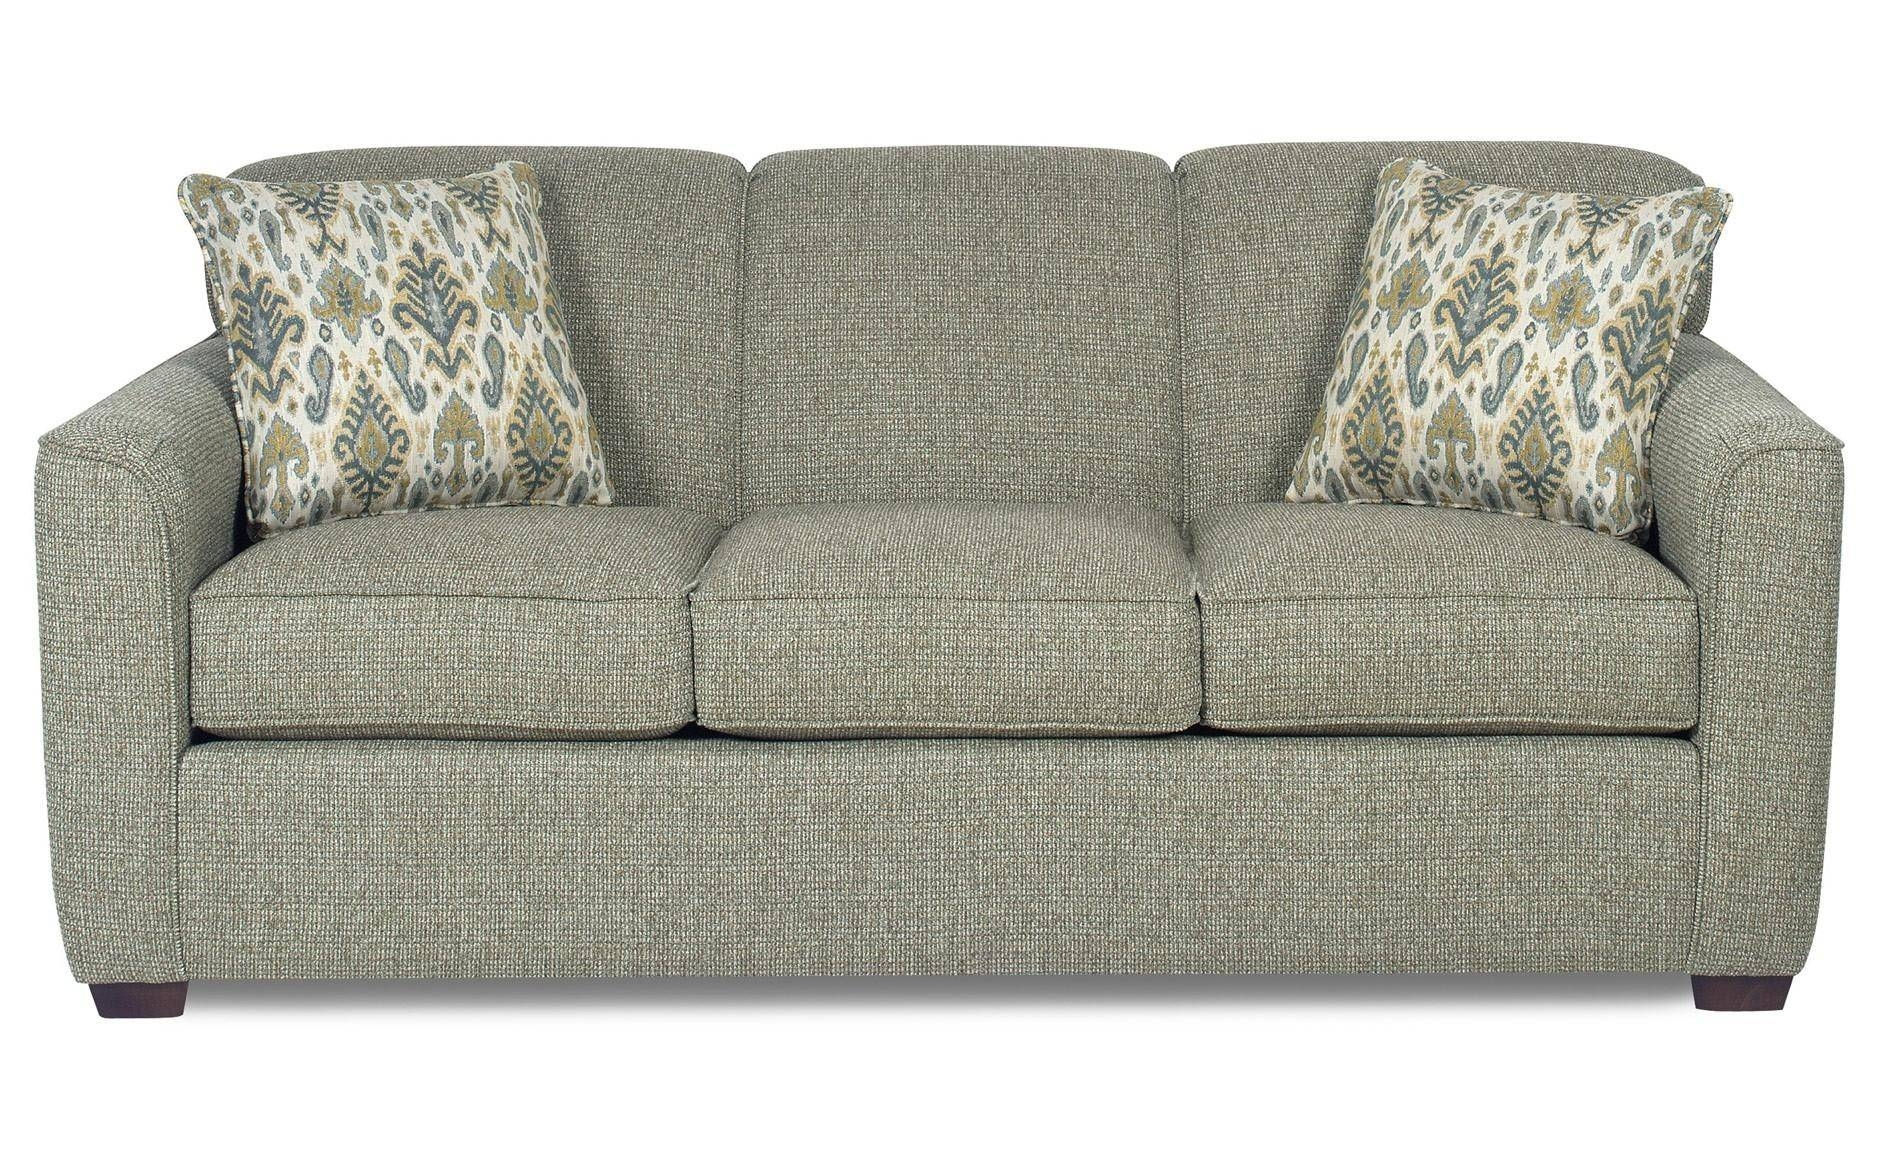 20 Inspirations Sealy Sofas | Sofa Ideas In Sealy Sofas (View 2 of 15)